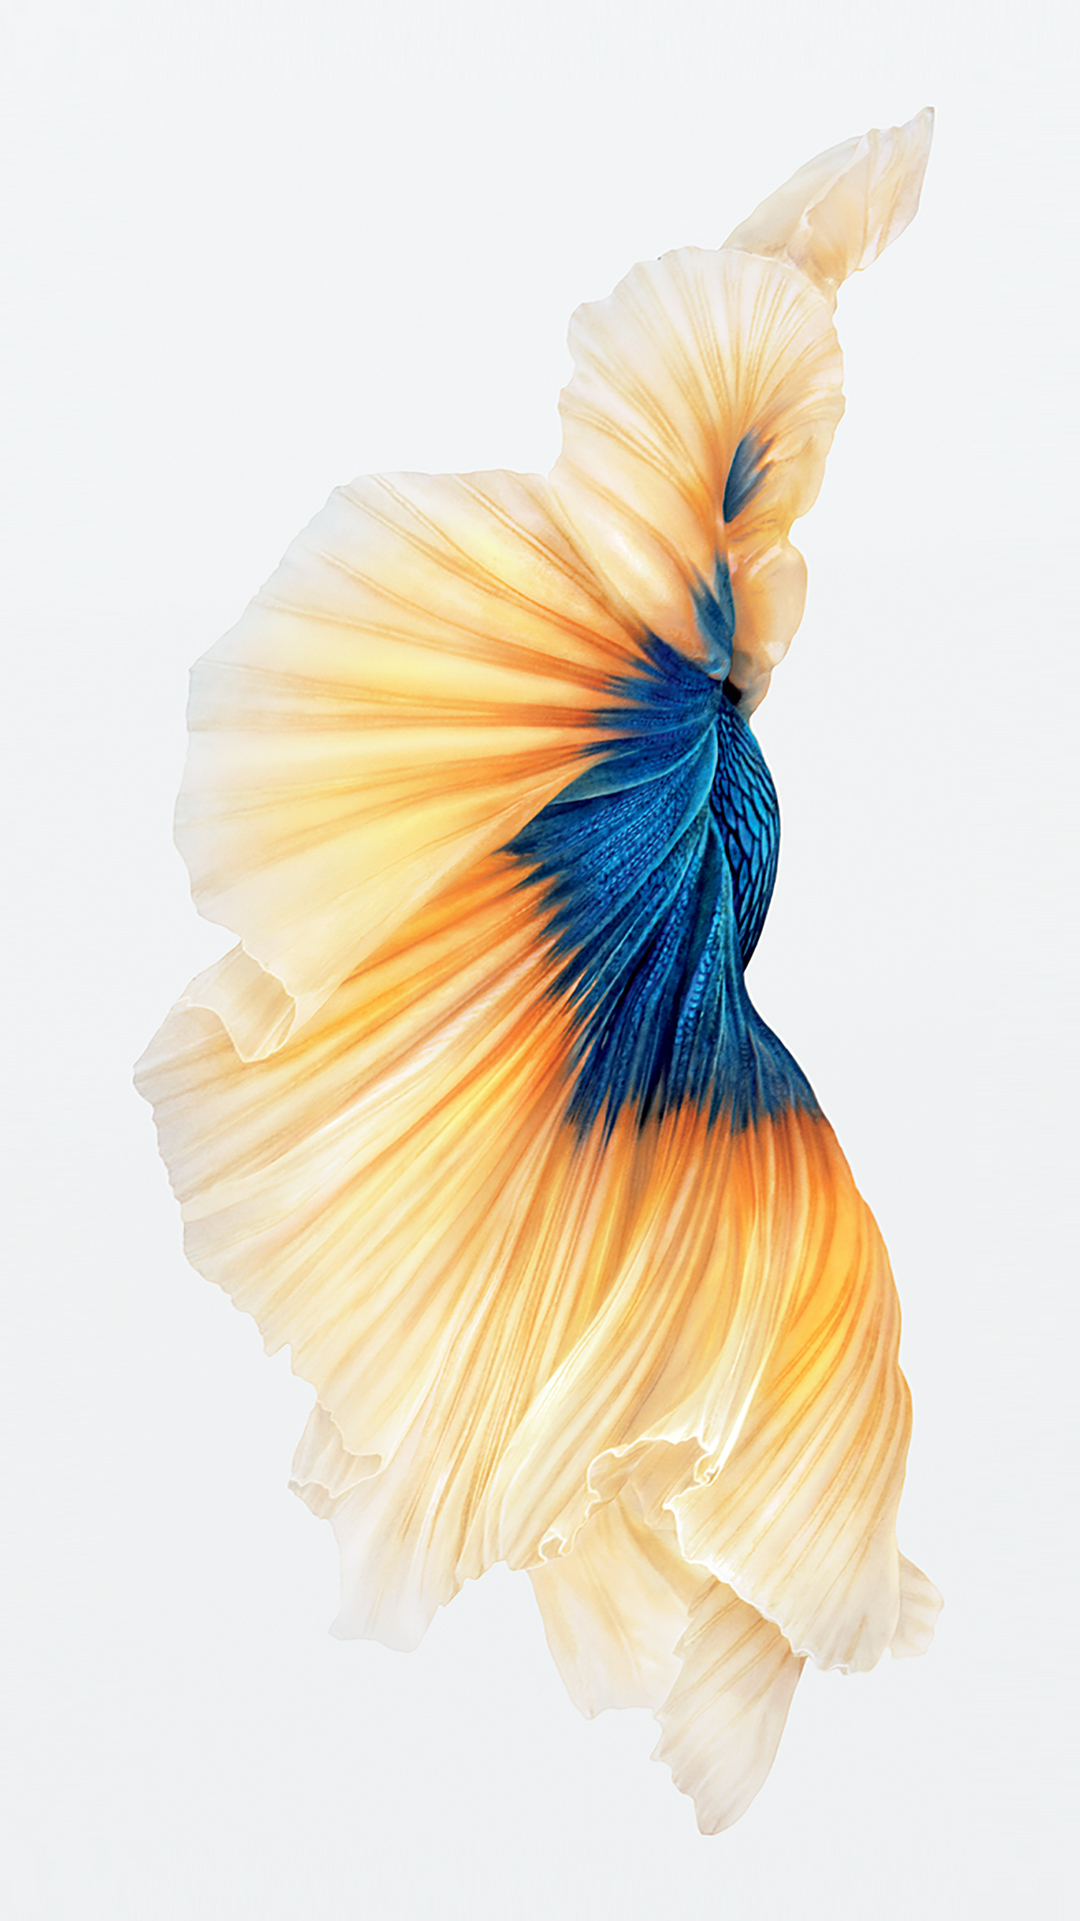 ios 9 fish wallpaper wallpapersafariwallpapers poissons iphone 5s iphone 6 iphone 6 plus ipod 1080x1921